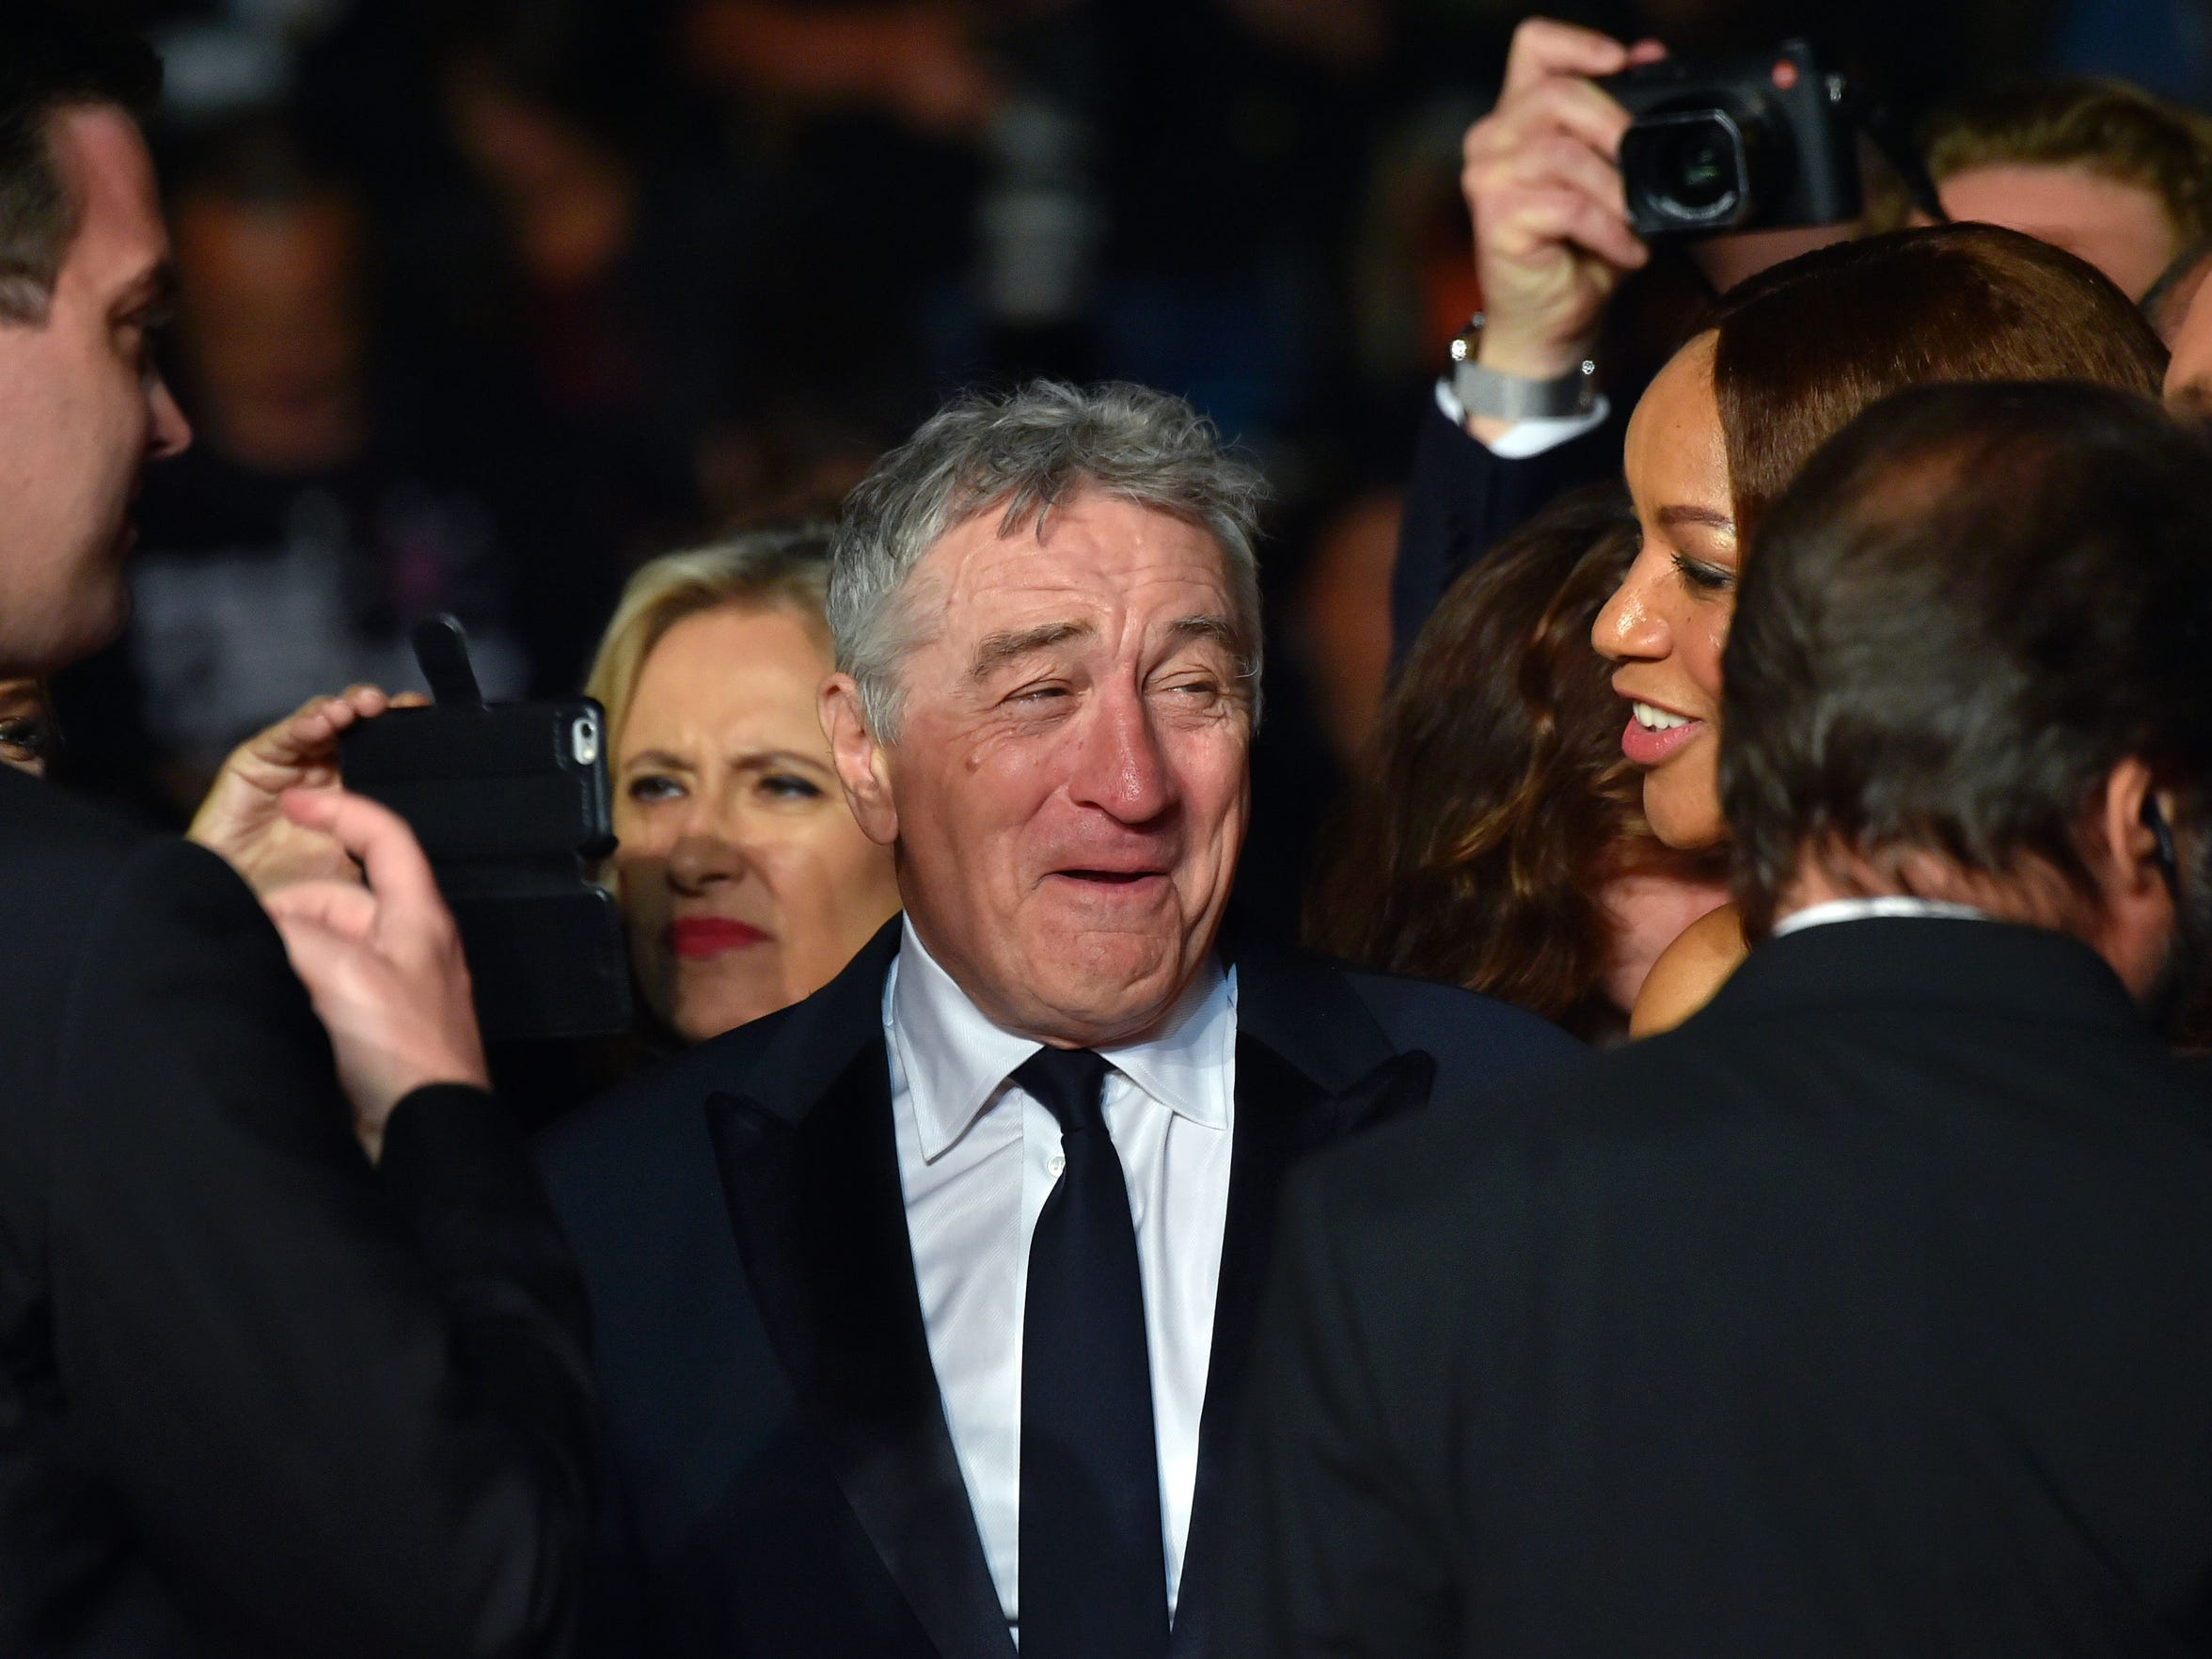 """Robert de Niro arrives or the screening of the film """"Hands of Stone"""" at the 69th Cannes Film Festival on Monday."""